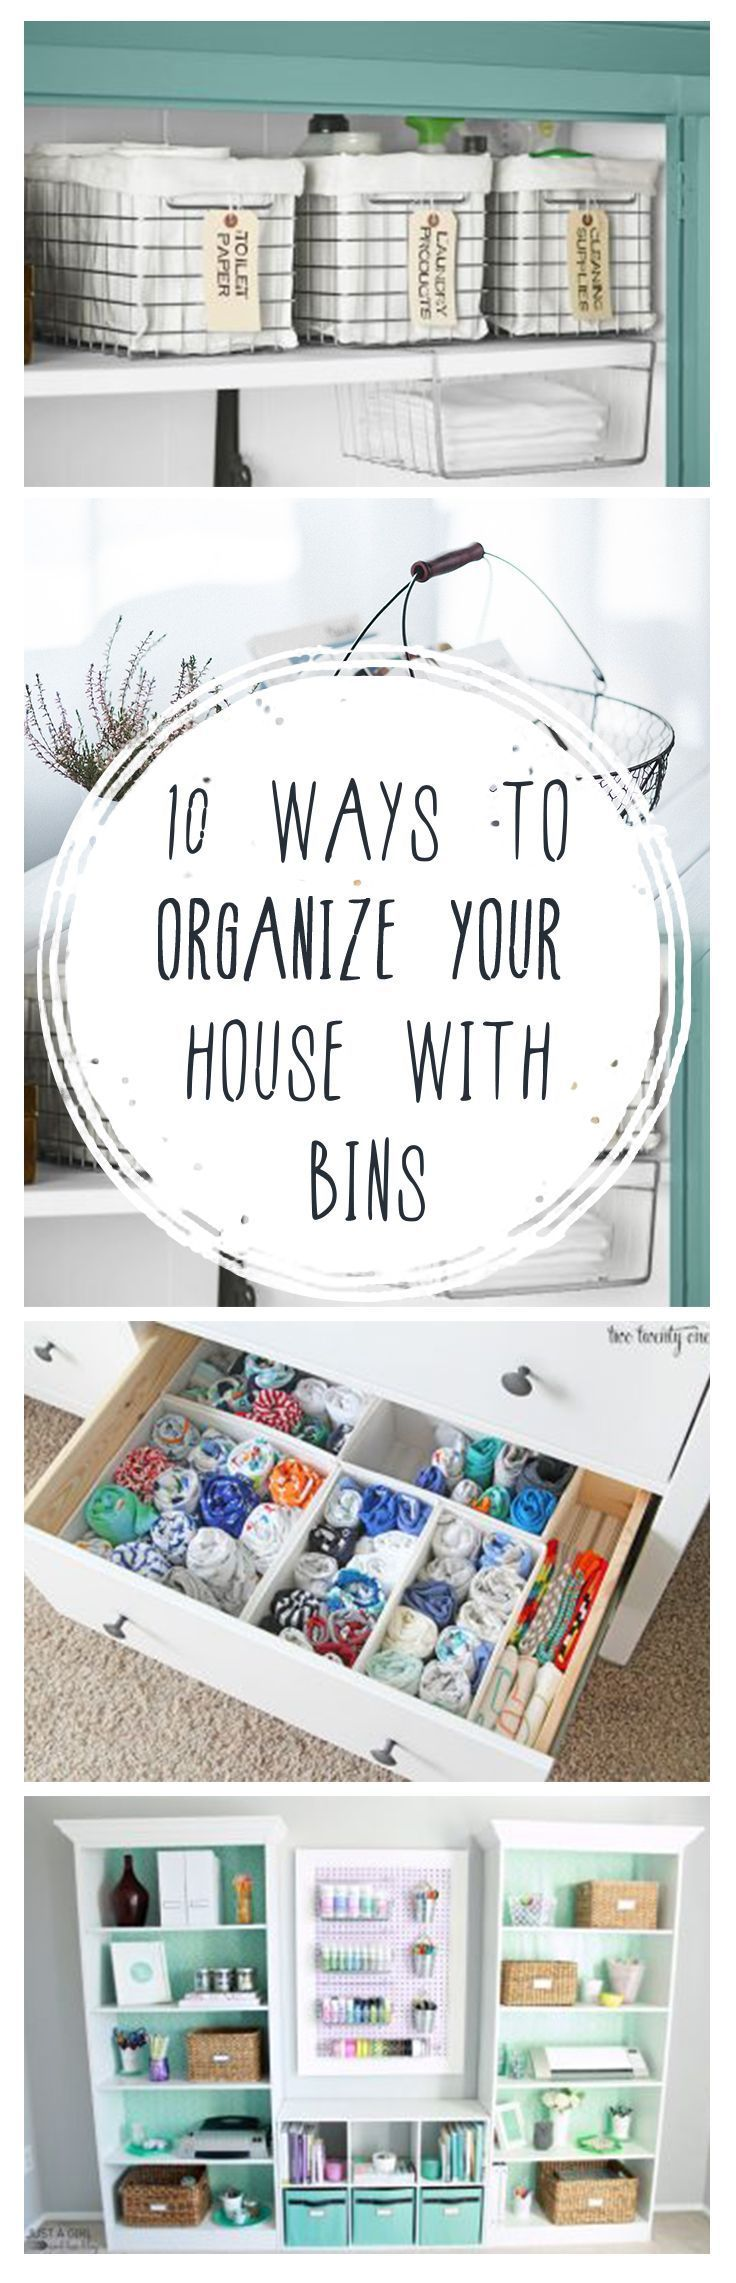 Organize your house with bins using these ideas.